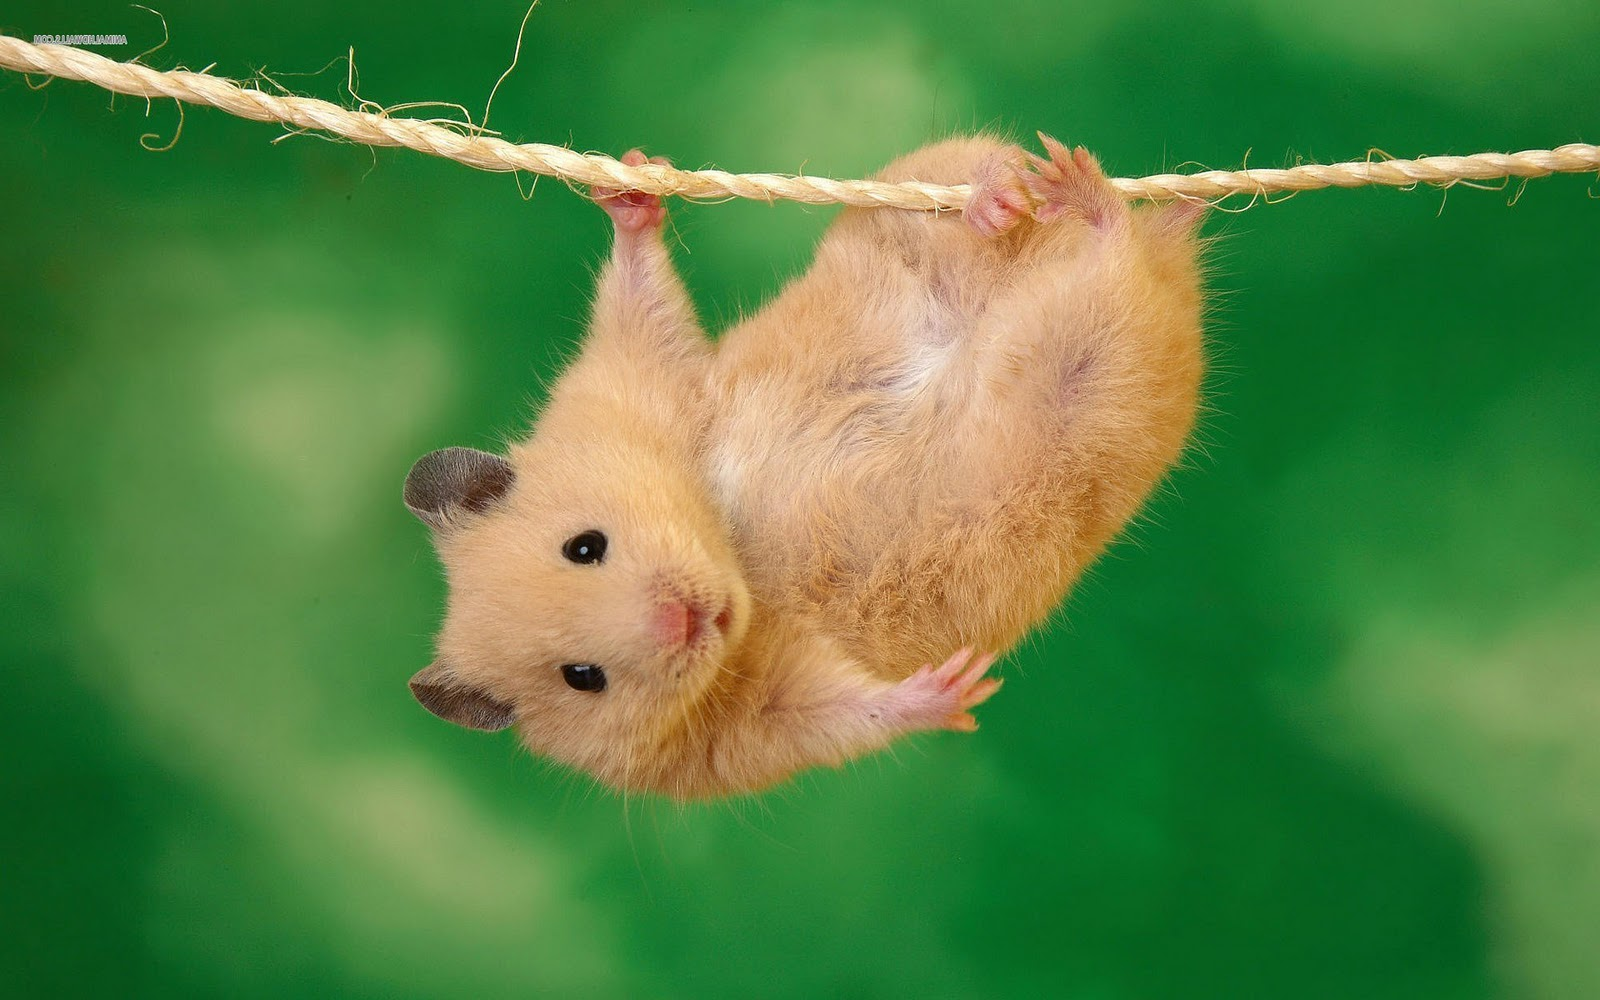 Hd Pictures Of Cute Animals: Hamsters Achtergronden